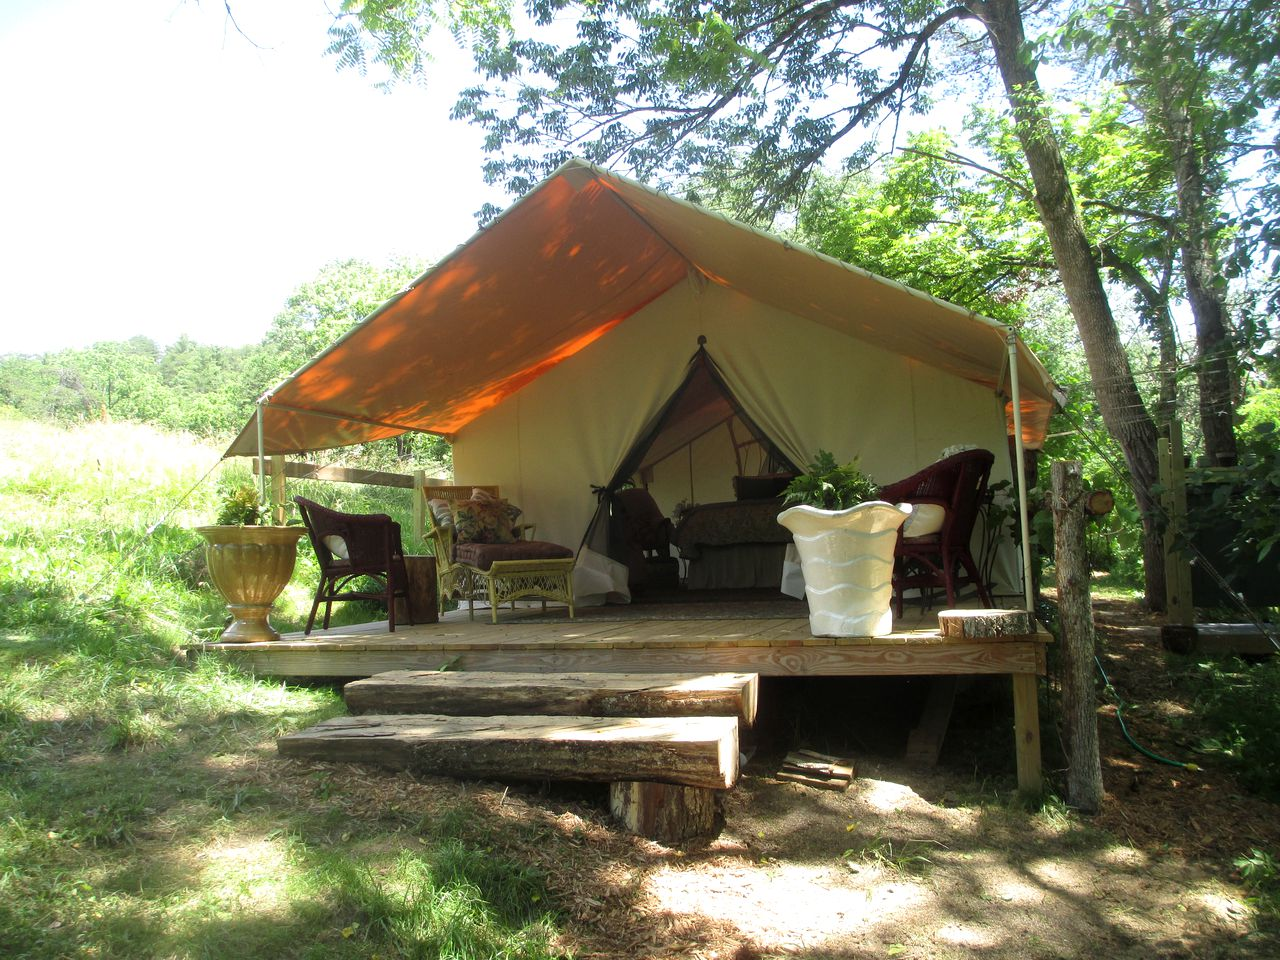 Tents (Asheville, North Carolina, United States)